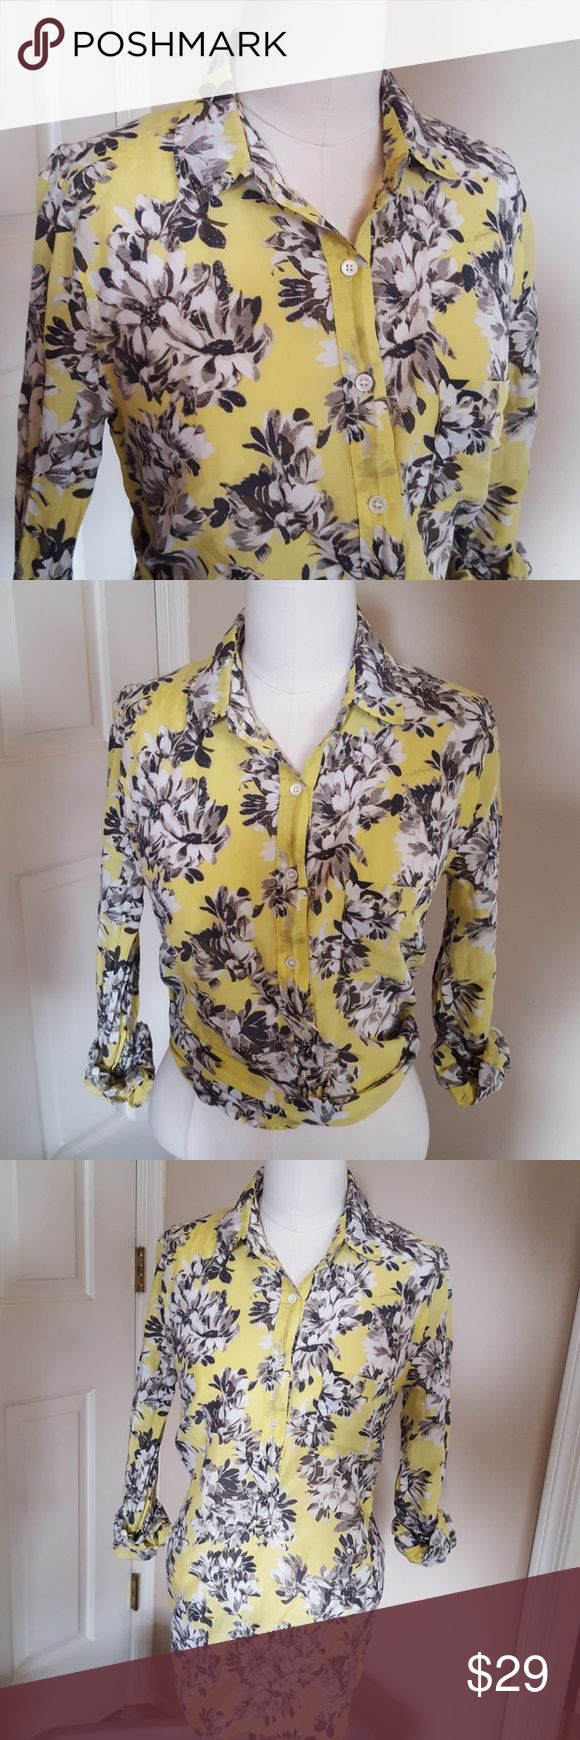 J.Crew floral button down Lemon yellow background with a gray and white floral print. Long sleeves. Collared with button down to waist. Small left breast pocket. 100% cotton...unbelievably soft. Excellent condition. J. Crew Tops Button Down Shirts